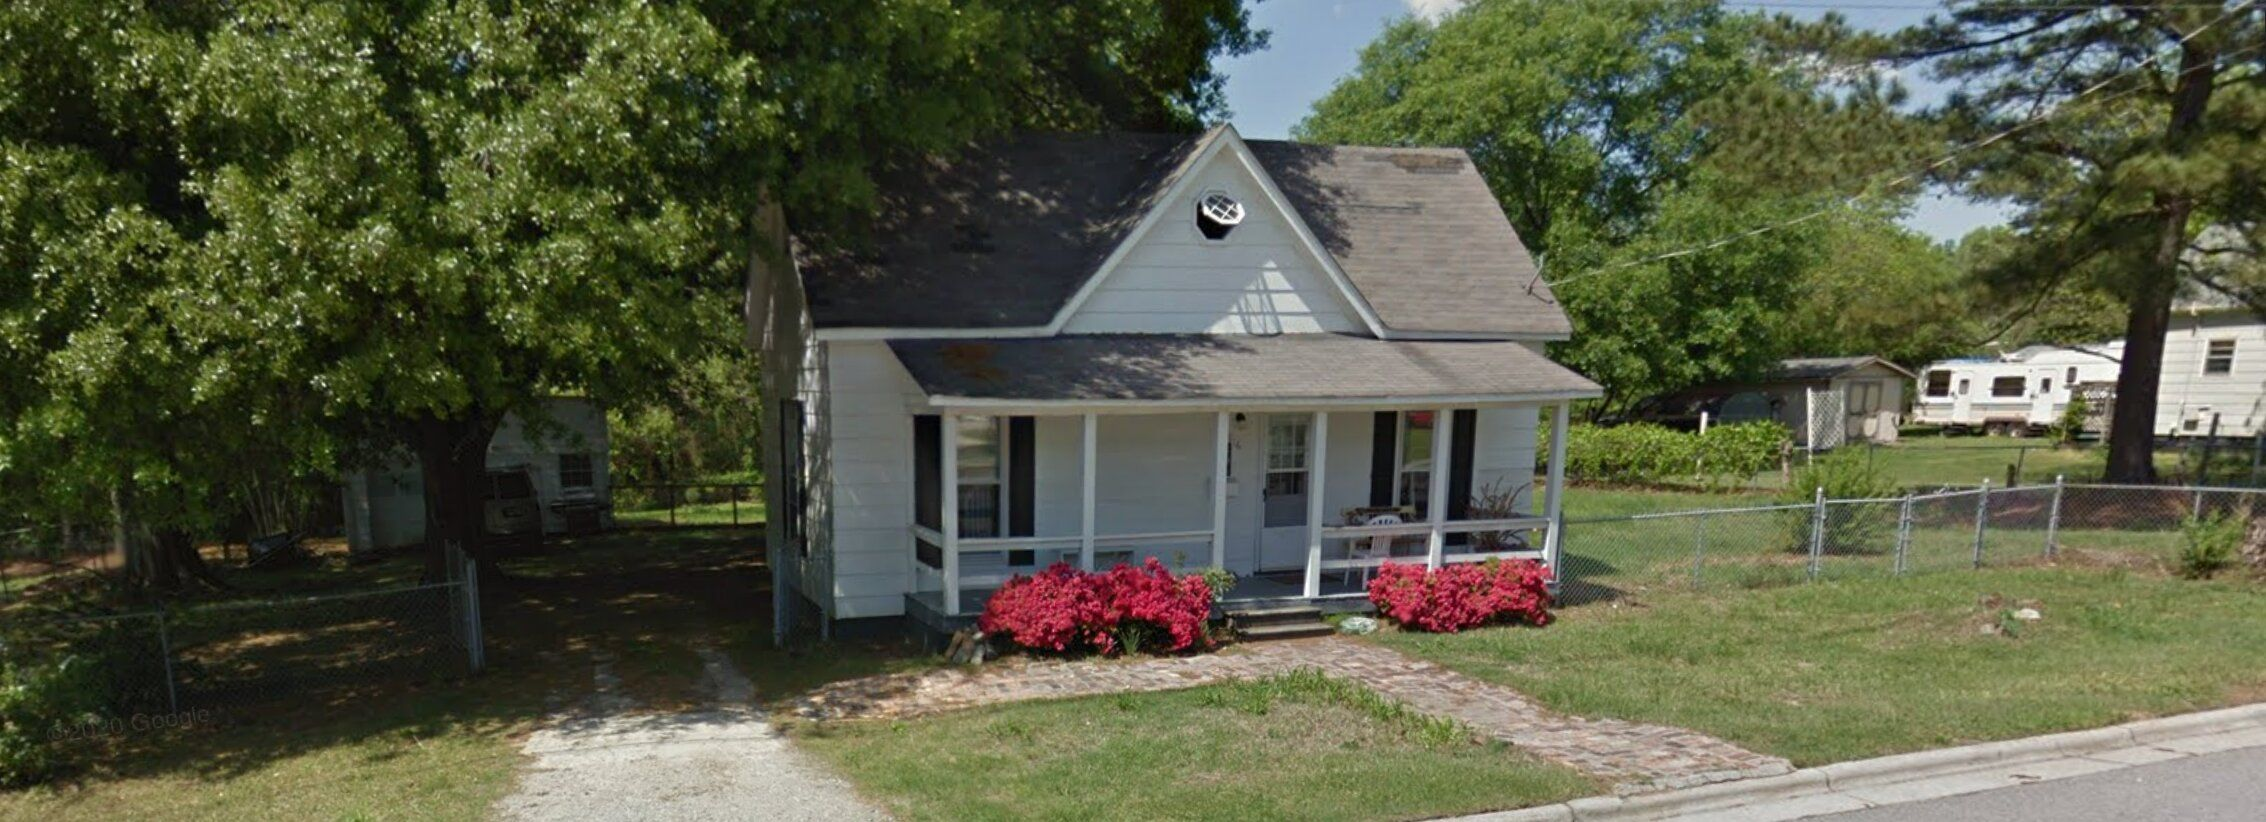 316 S Moore St, Clayton, NC